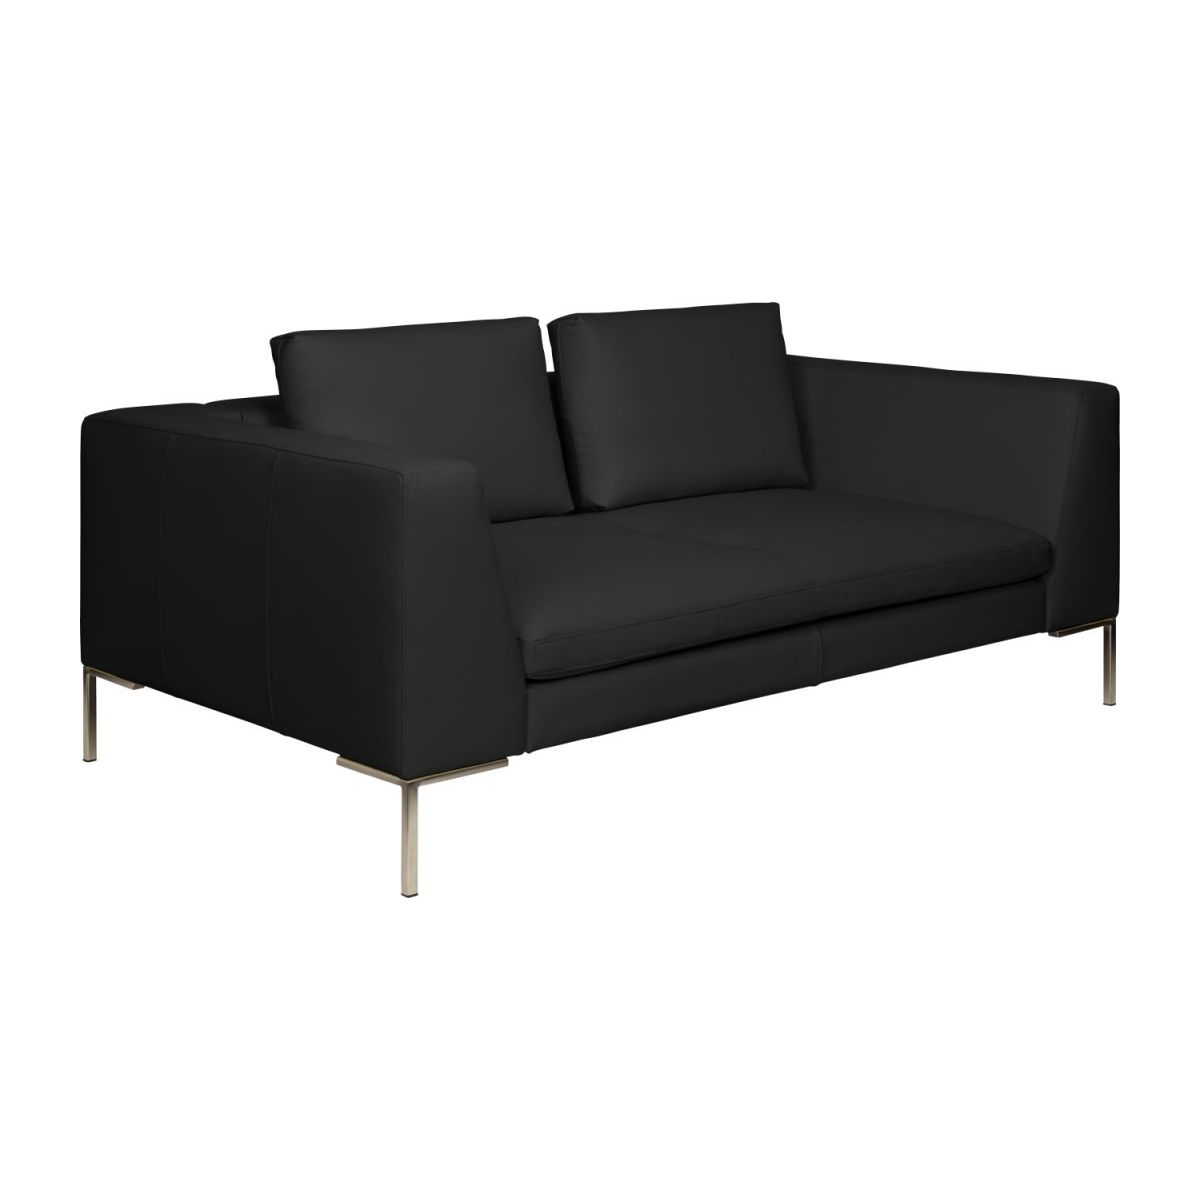 2 seater sofa in Eton veined leather, black n°1